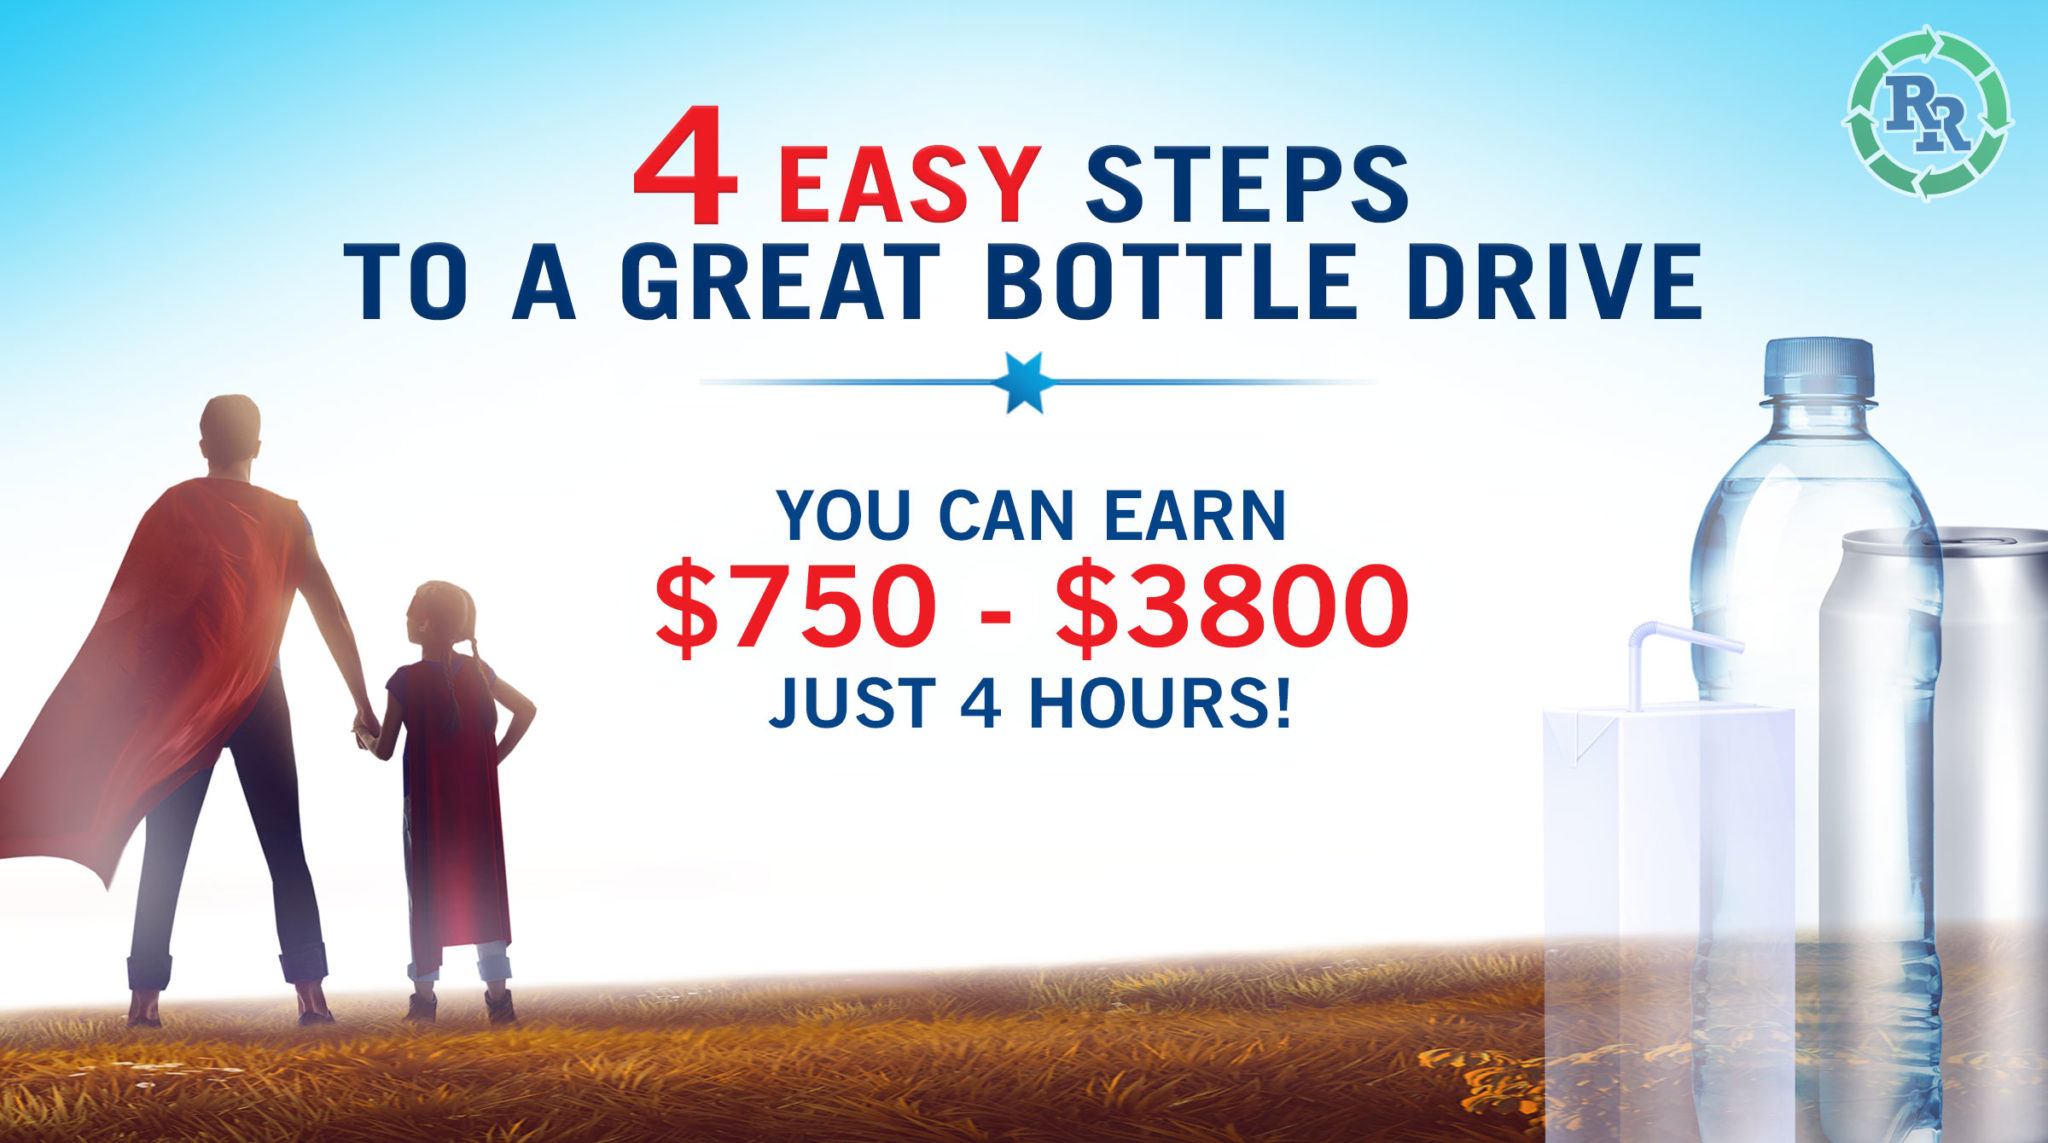 Regional Recycling - 4 easy steps to bottle drive success